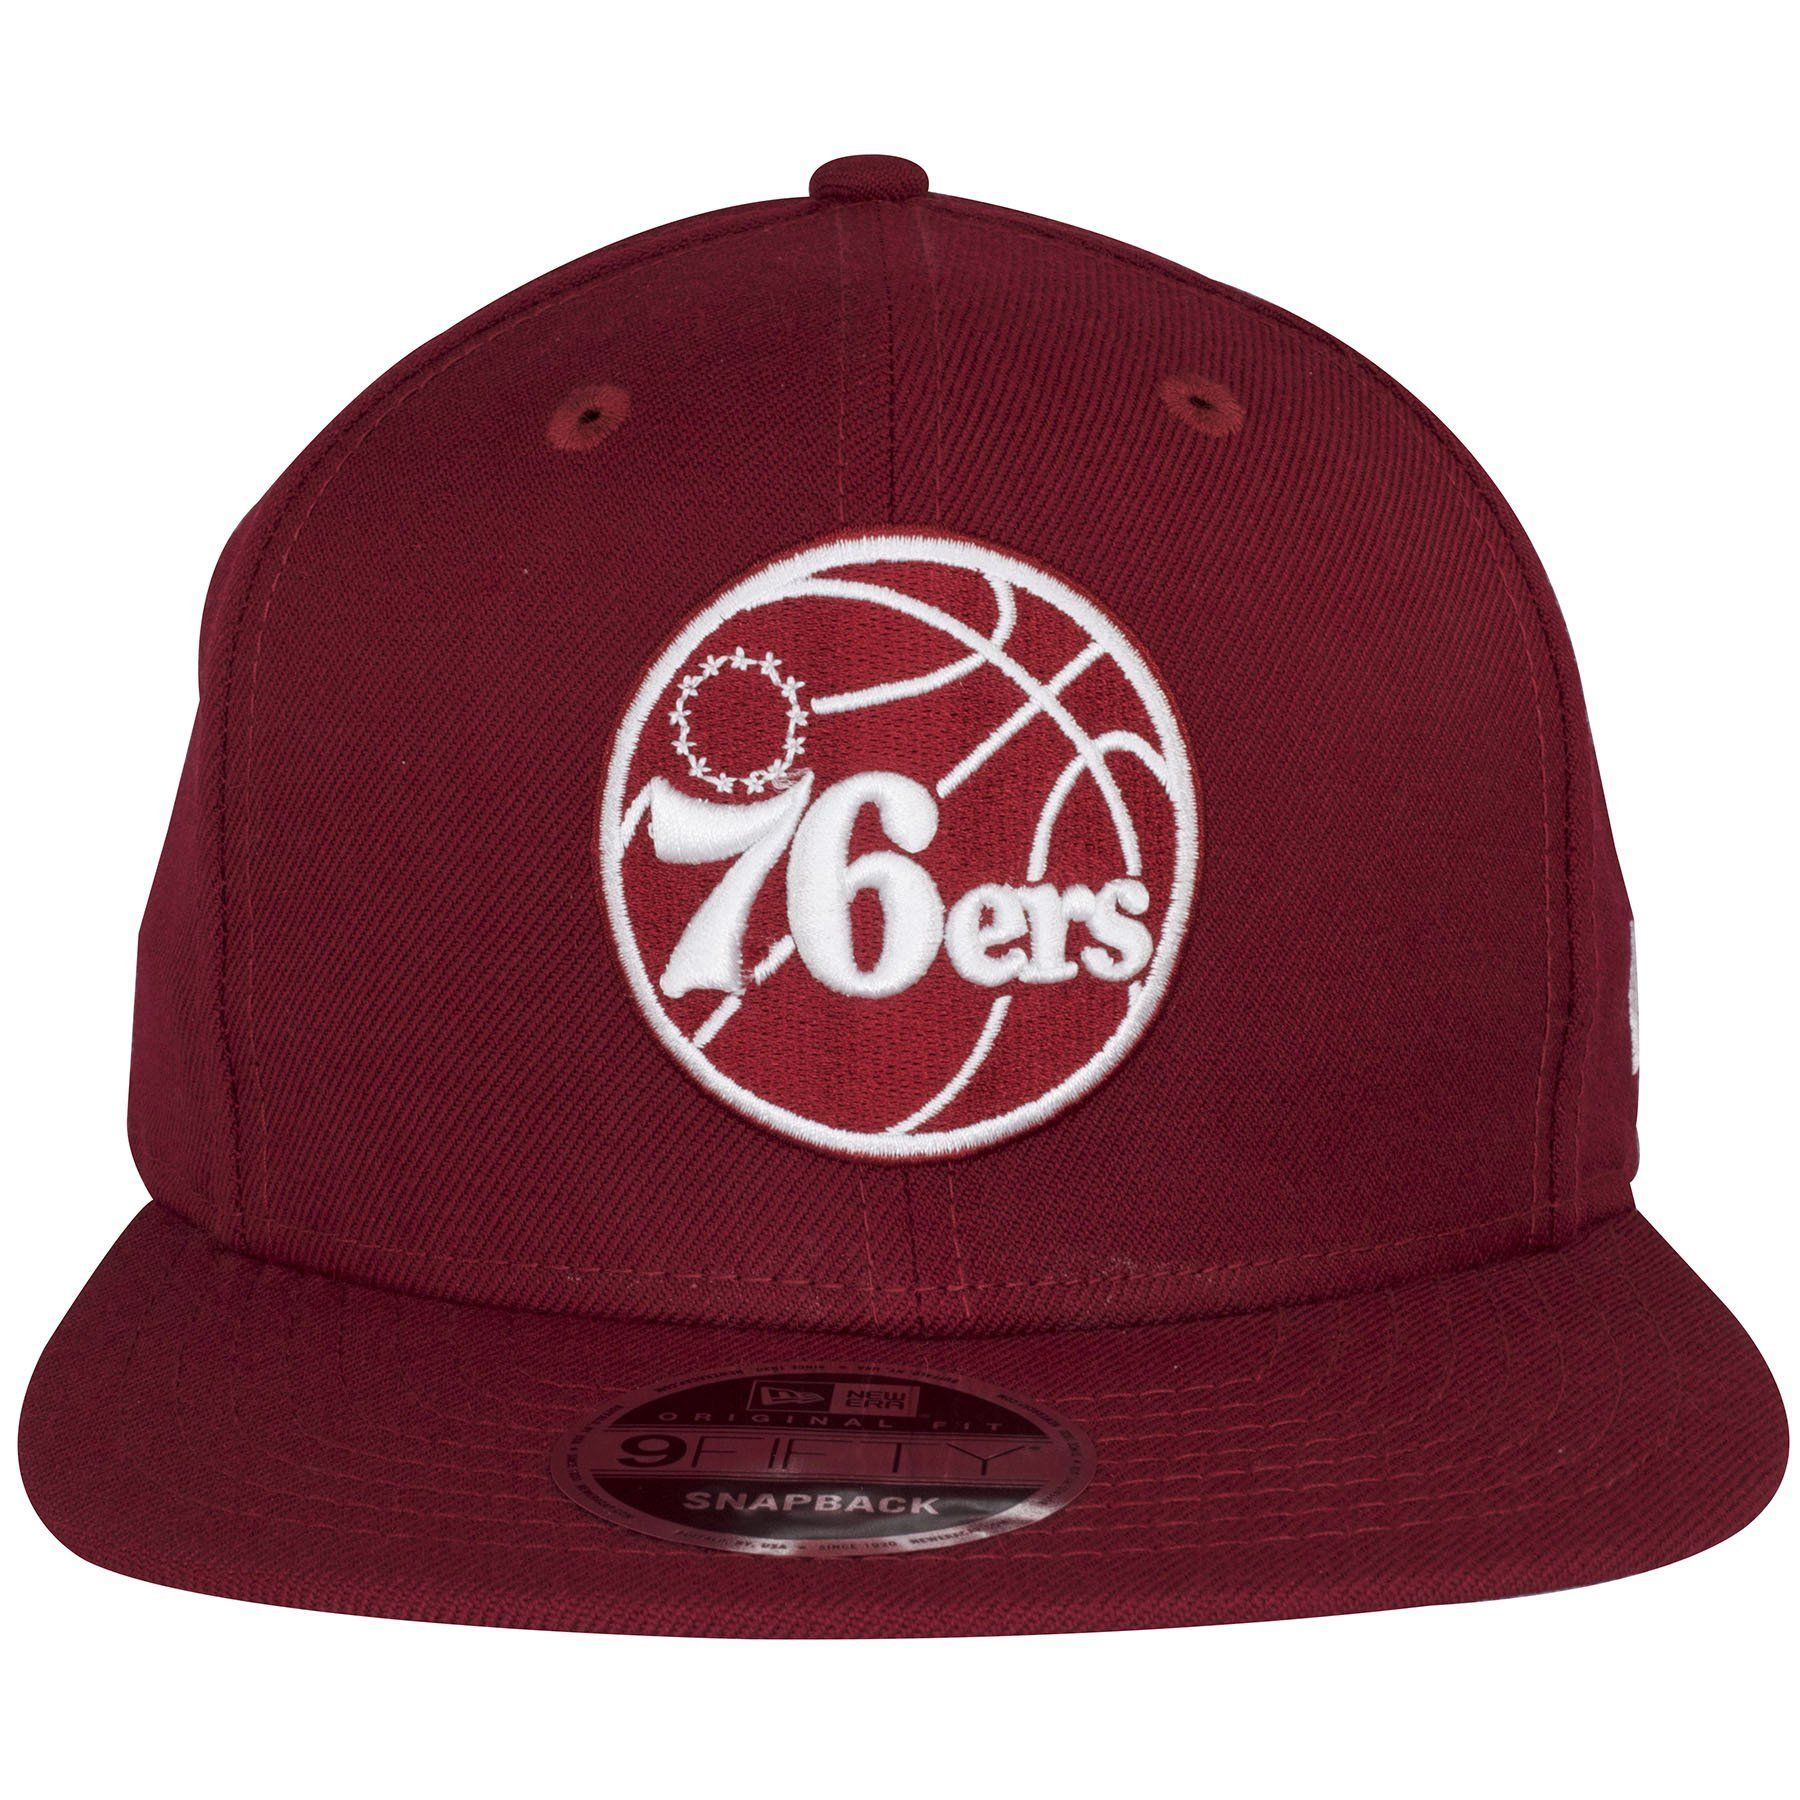 69725aa156516d We brought in this awesome custom piece, a Philadelphia 76ers snapback hat  in the Cooperstown Phillies maroon and white colorway!